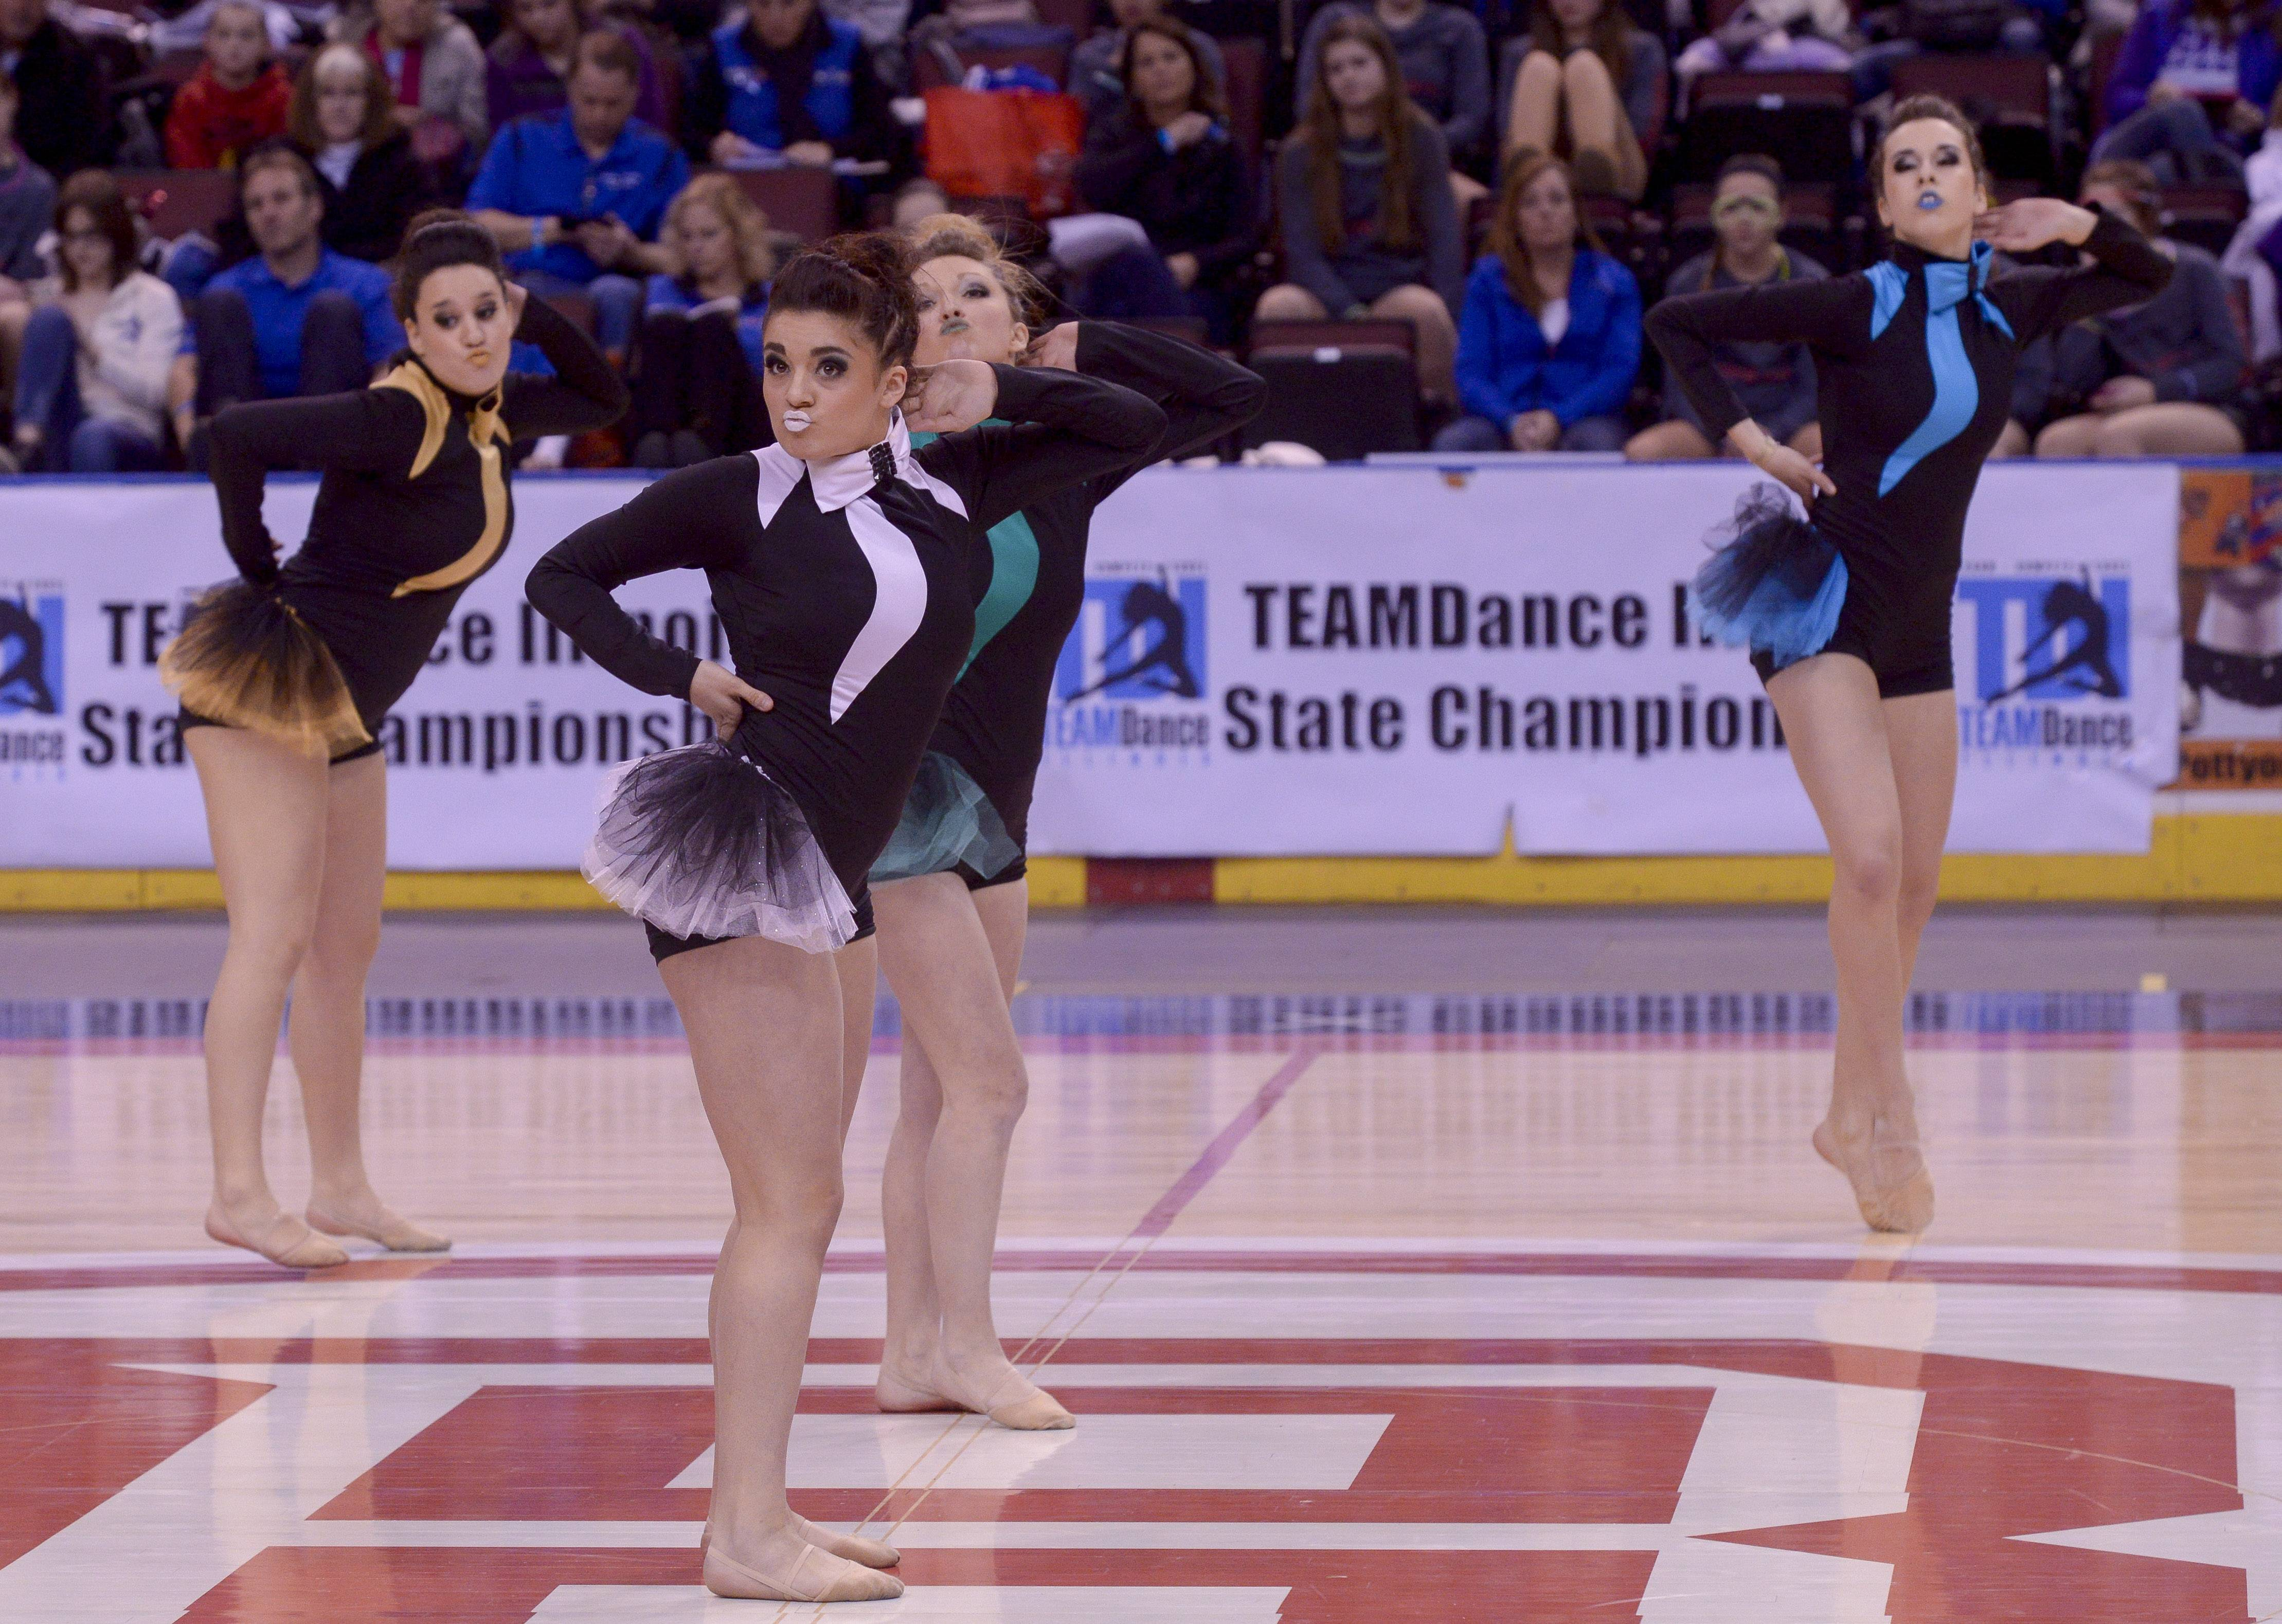 Larkin High School performs in the 2A Open Dance category during the TEAMDance Illinois 2014 Grand Championship in Peoria, Sunday March 2nd.